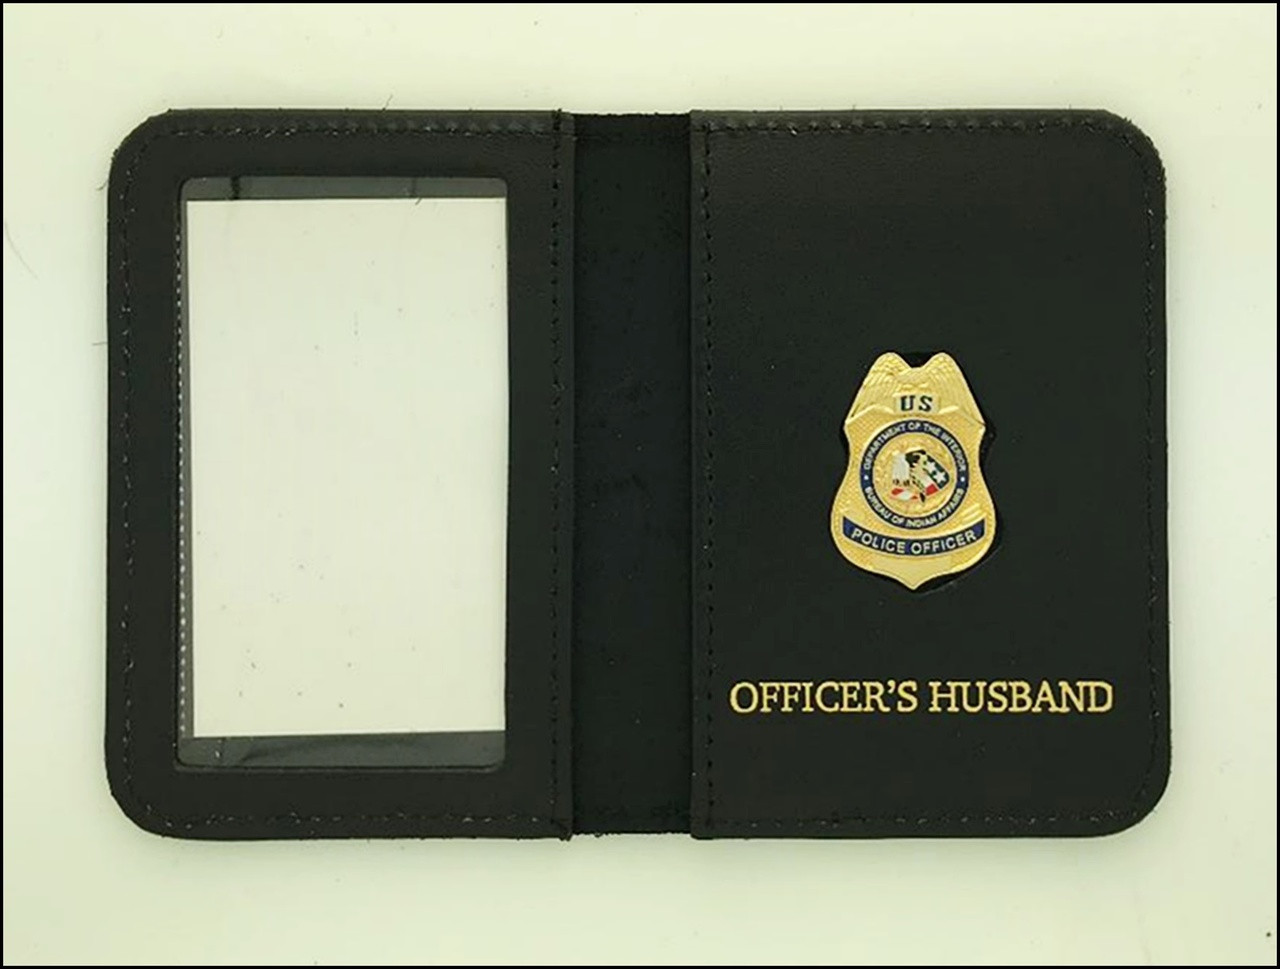 Bureau of Indian Affairs Police Officer Mini Badge ID Cases with Officers Husband Embossing